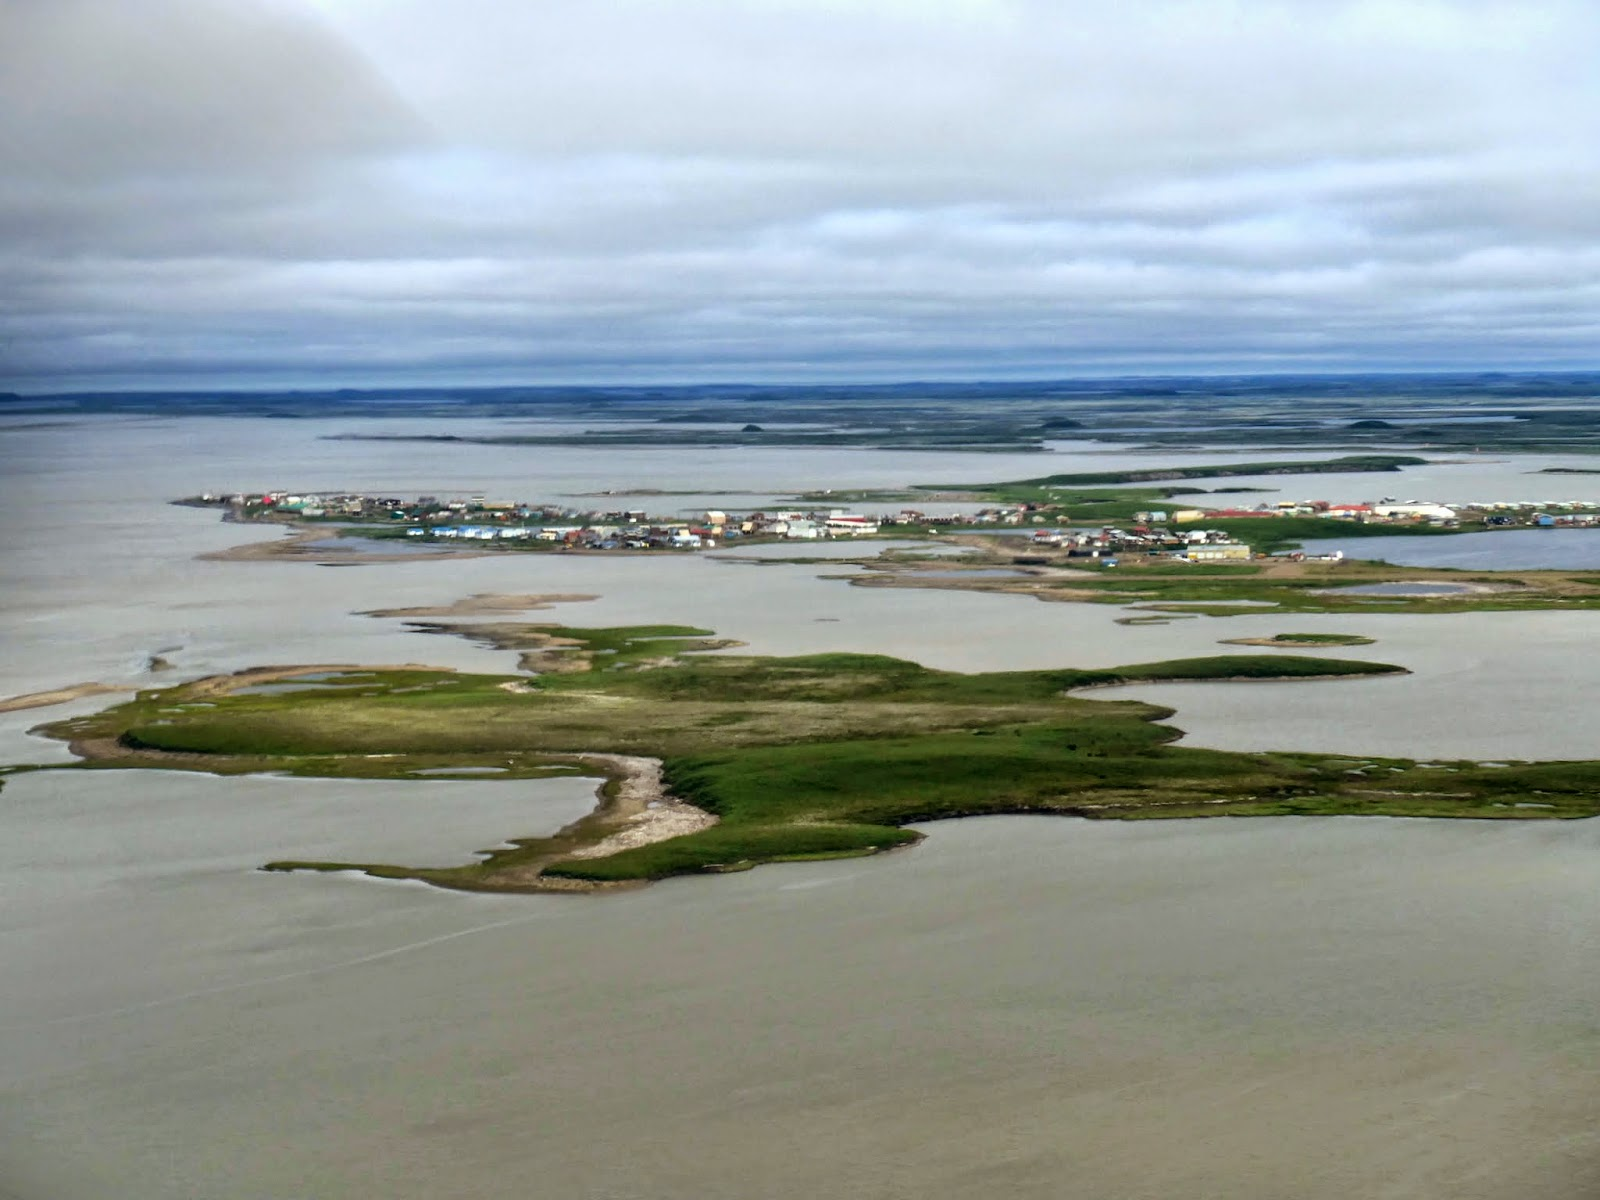 Tuktoyaktuk from the air